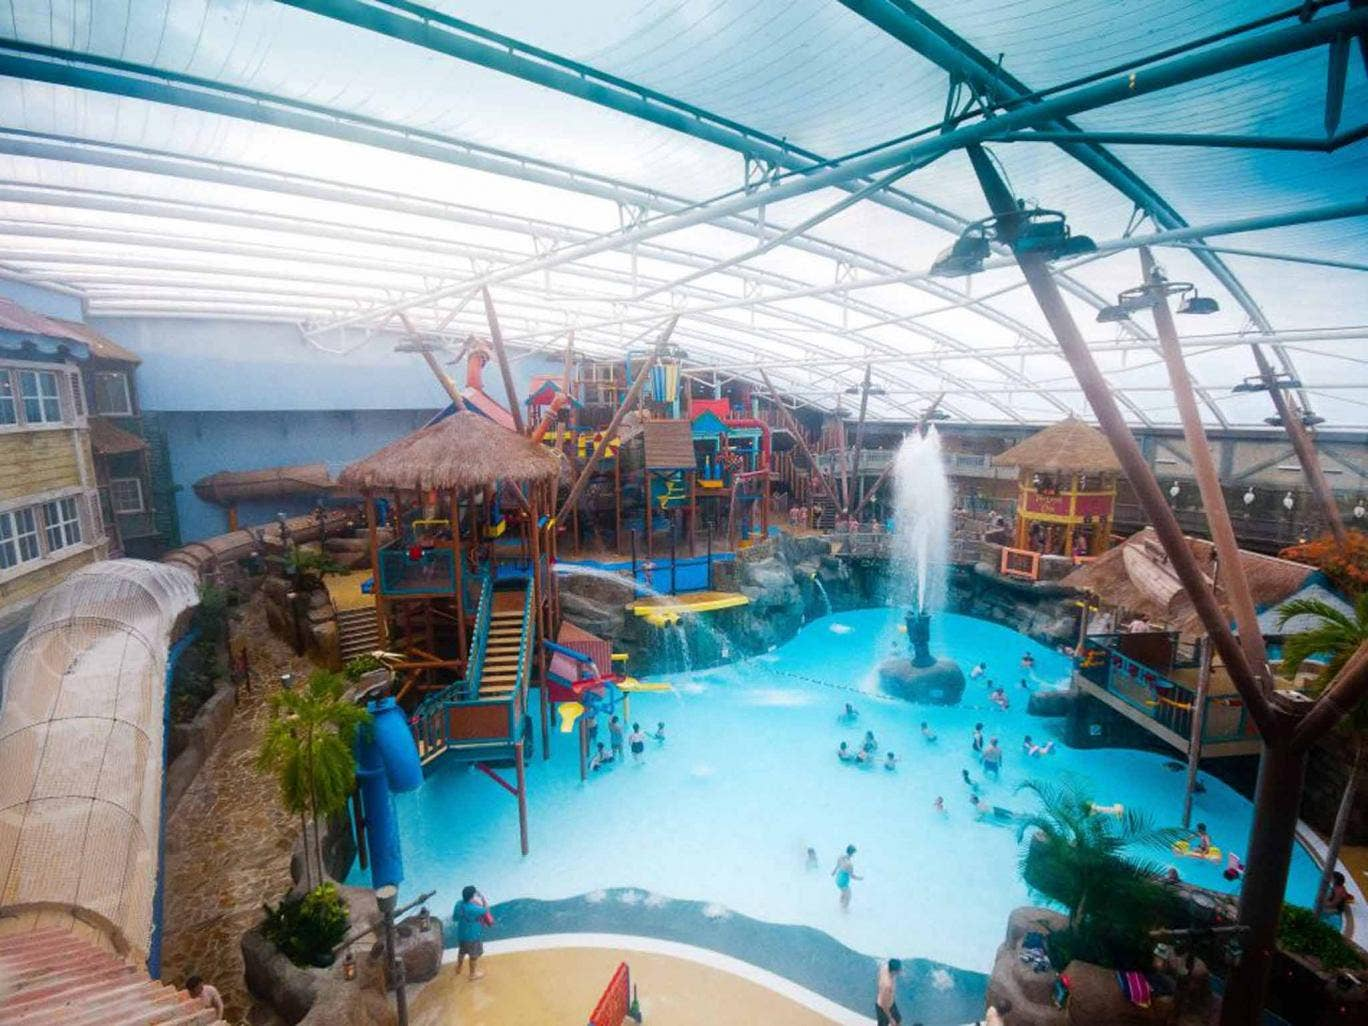 Top Places To Swim In The Uk From Wild Ponds To Water Slides Uk Travel The Independent